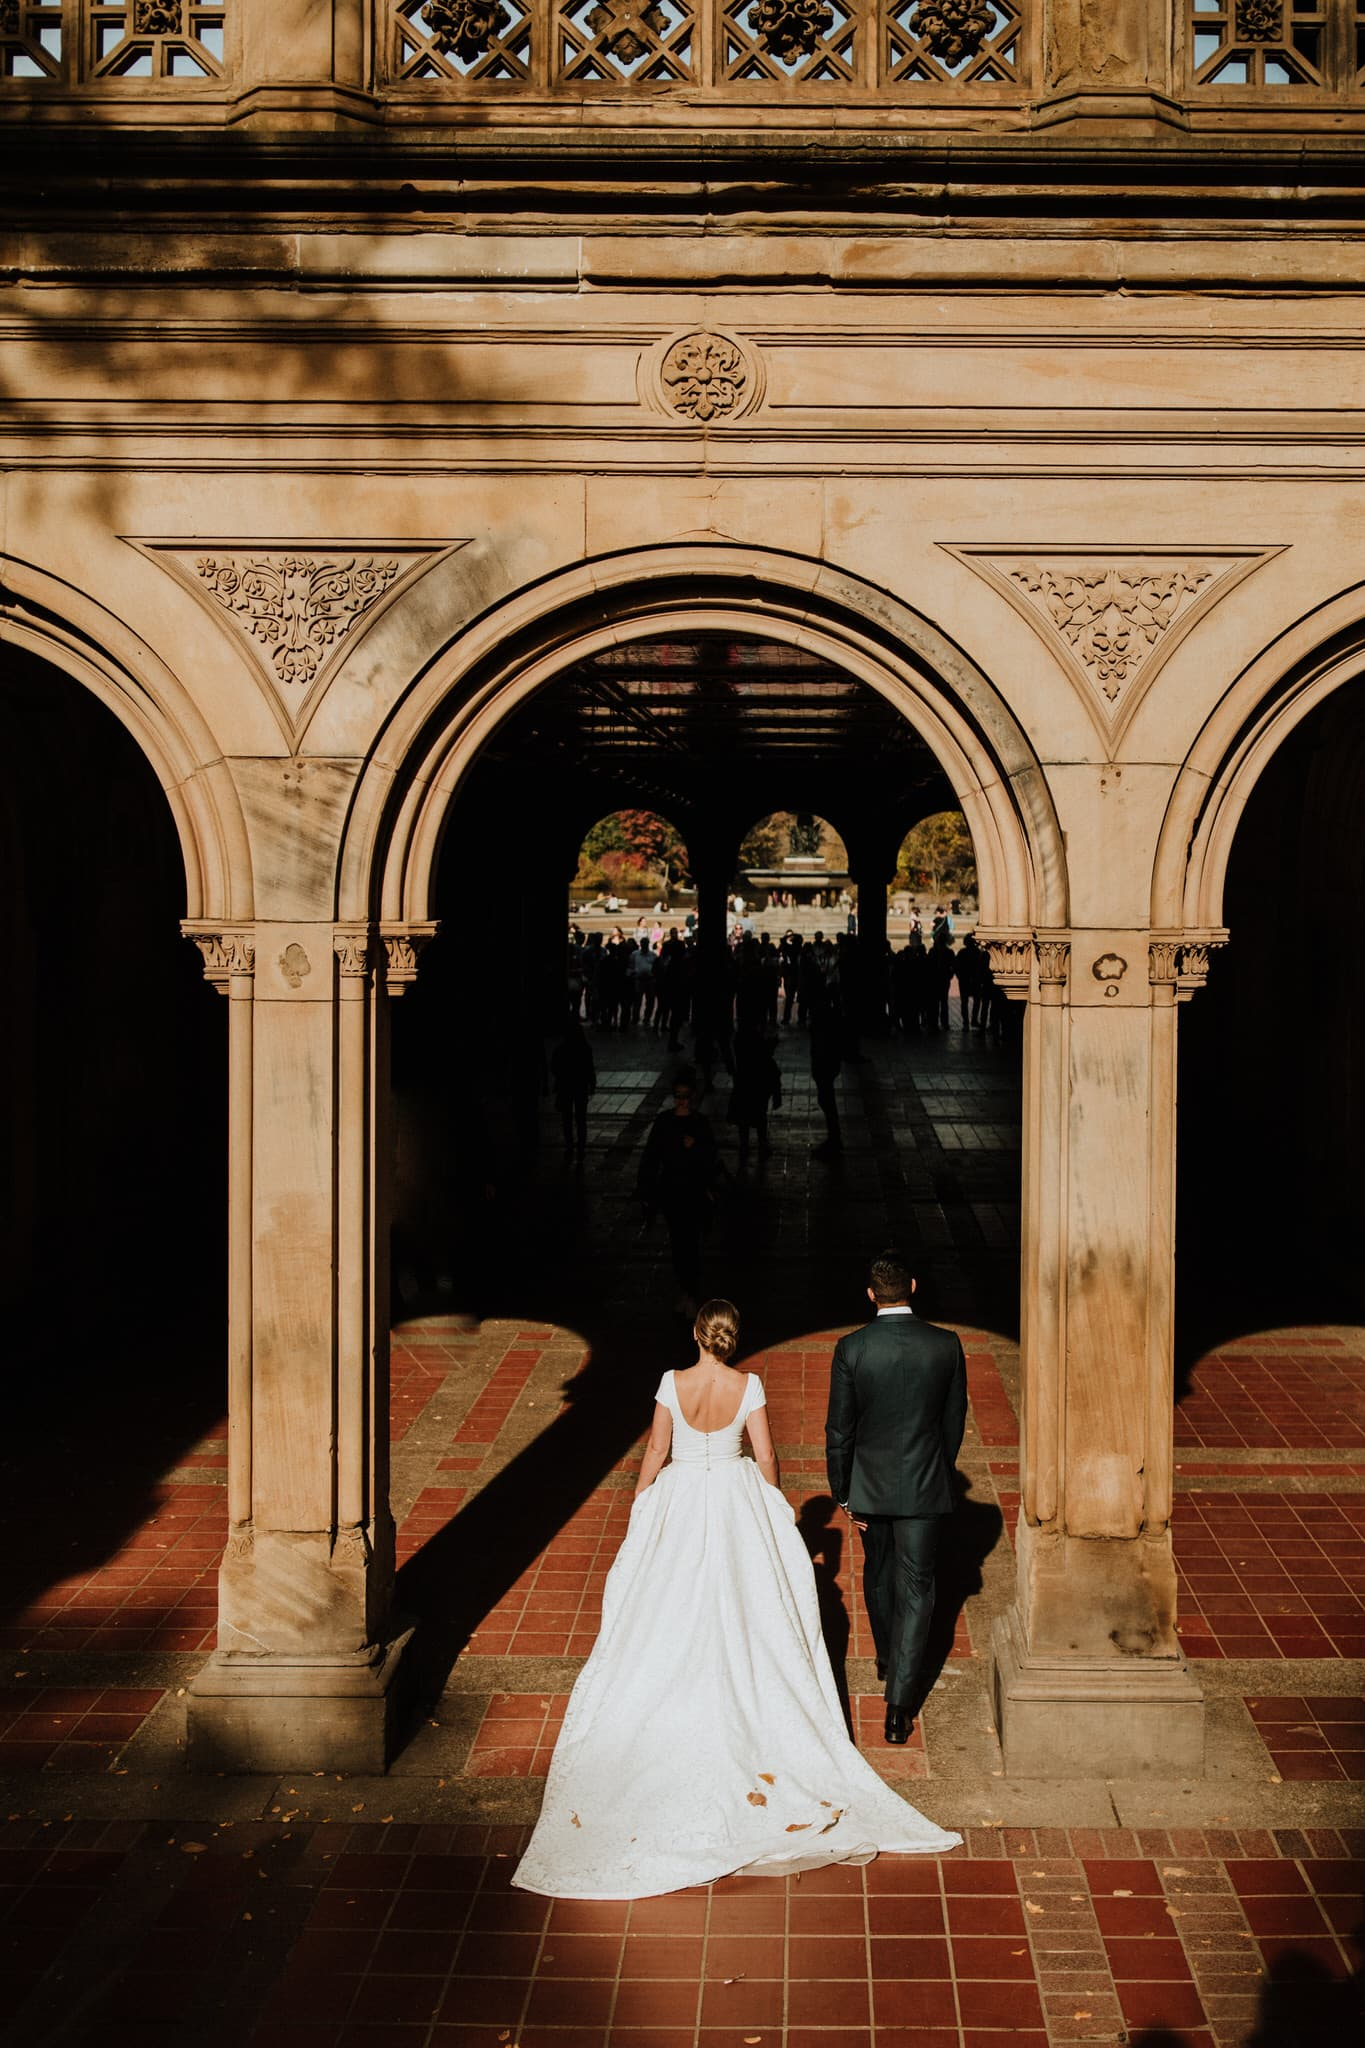 The bride and groom walk under the archway towards Bethesda Terrace in Central Park, New York City. Wedding Photographer Brent Calis.